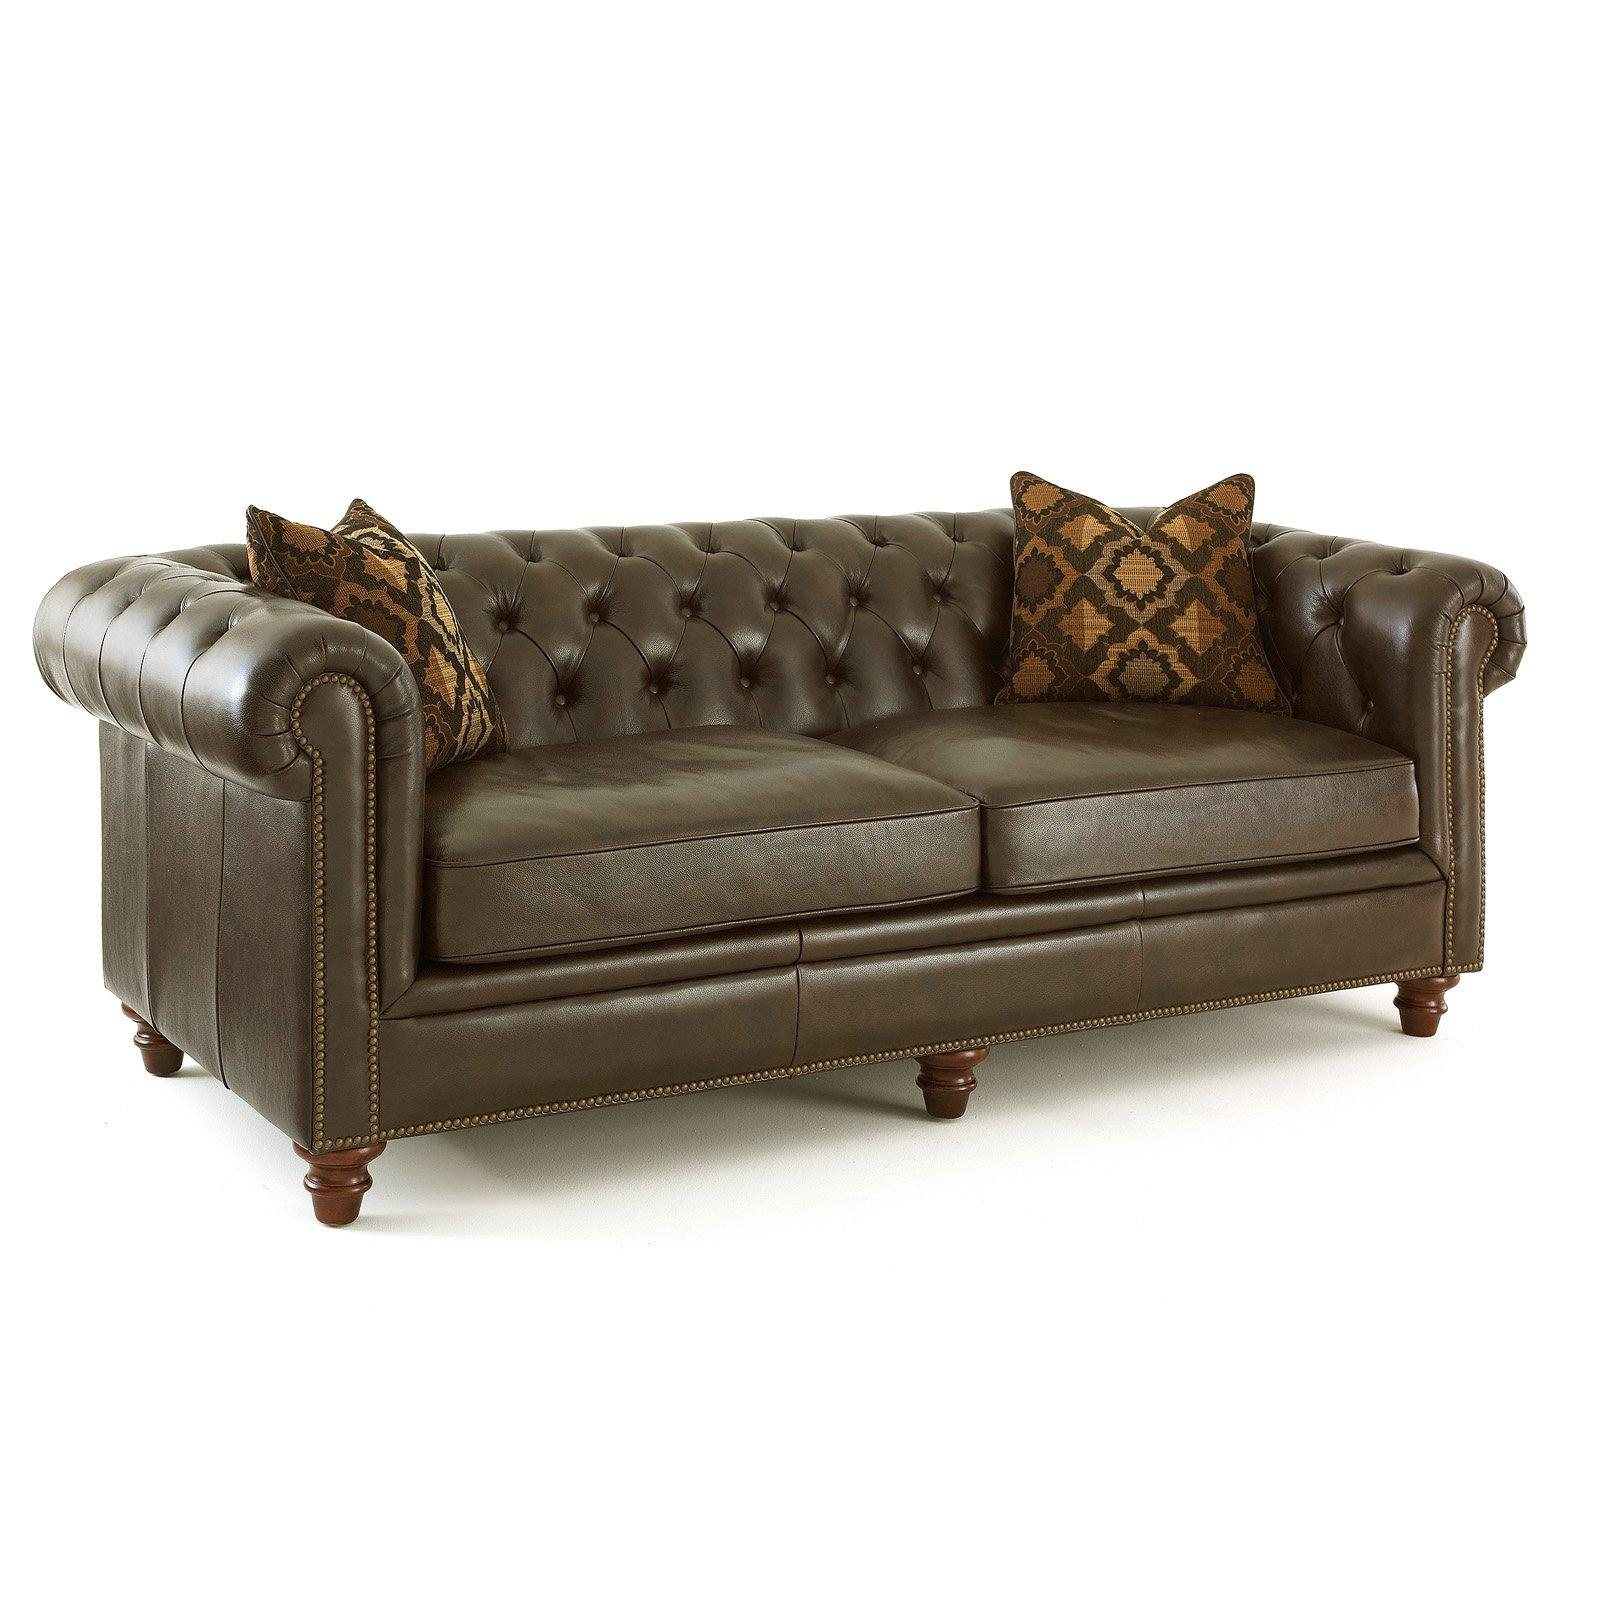 Fancy Barcalounger Sofa 88 For Your Sofas And Couches Ideas With Intended For Barcalounger Sofas (Photo 3 of 20)